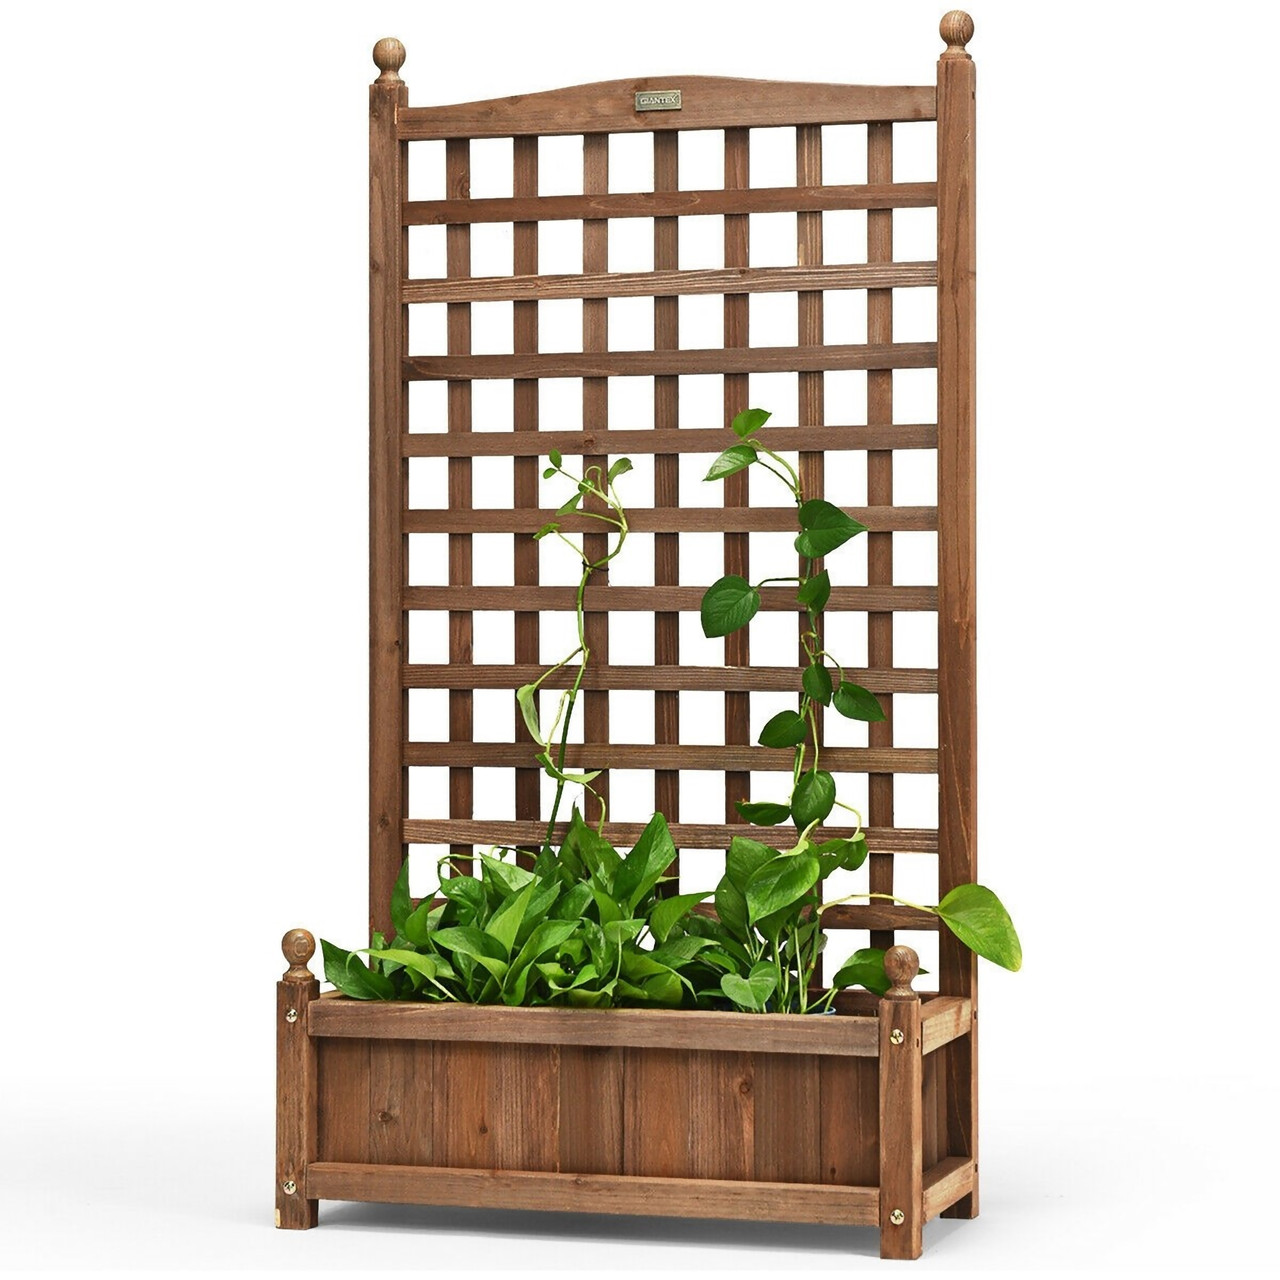 Solid Fir Wood Planter Box with Attached Trellis